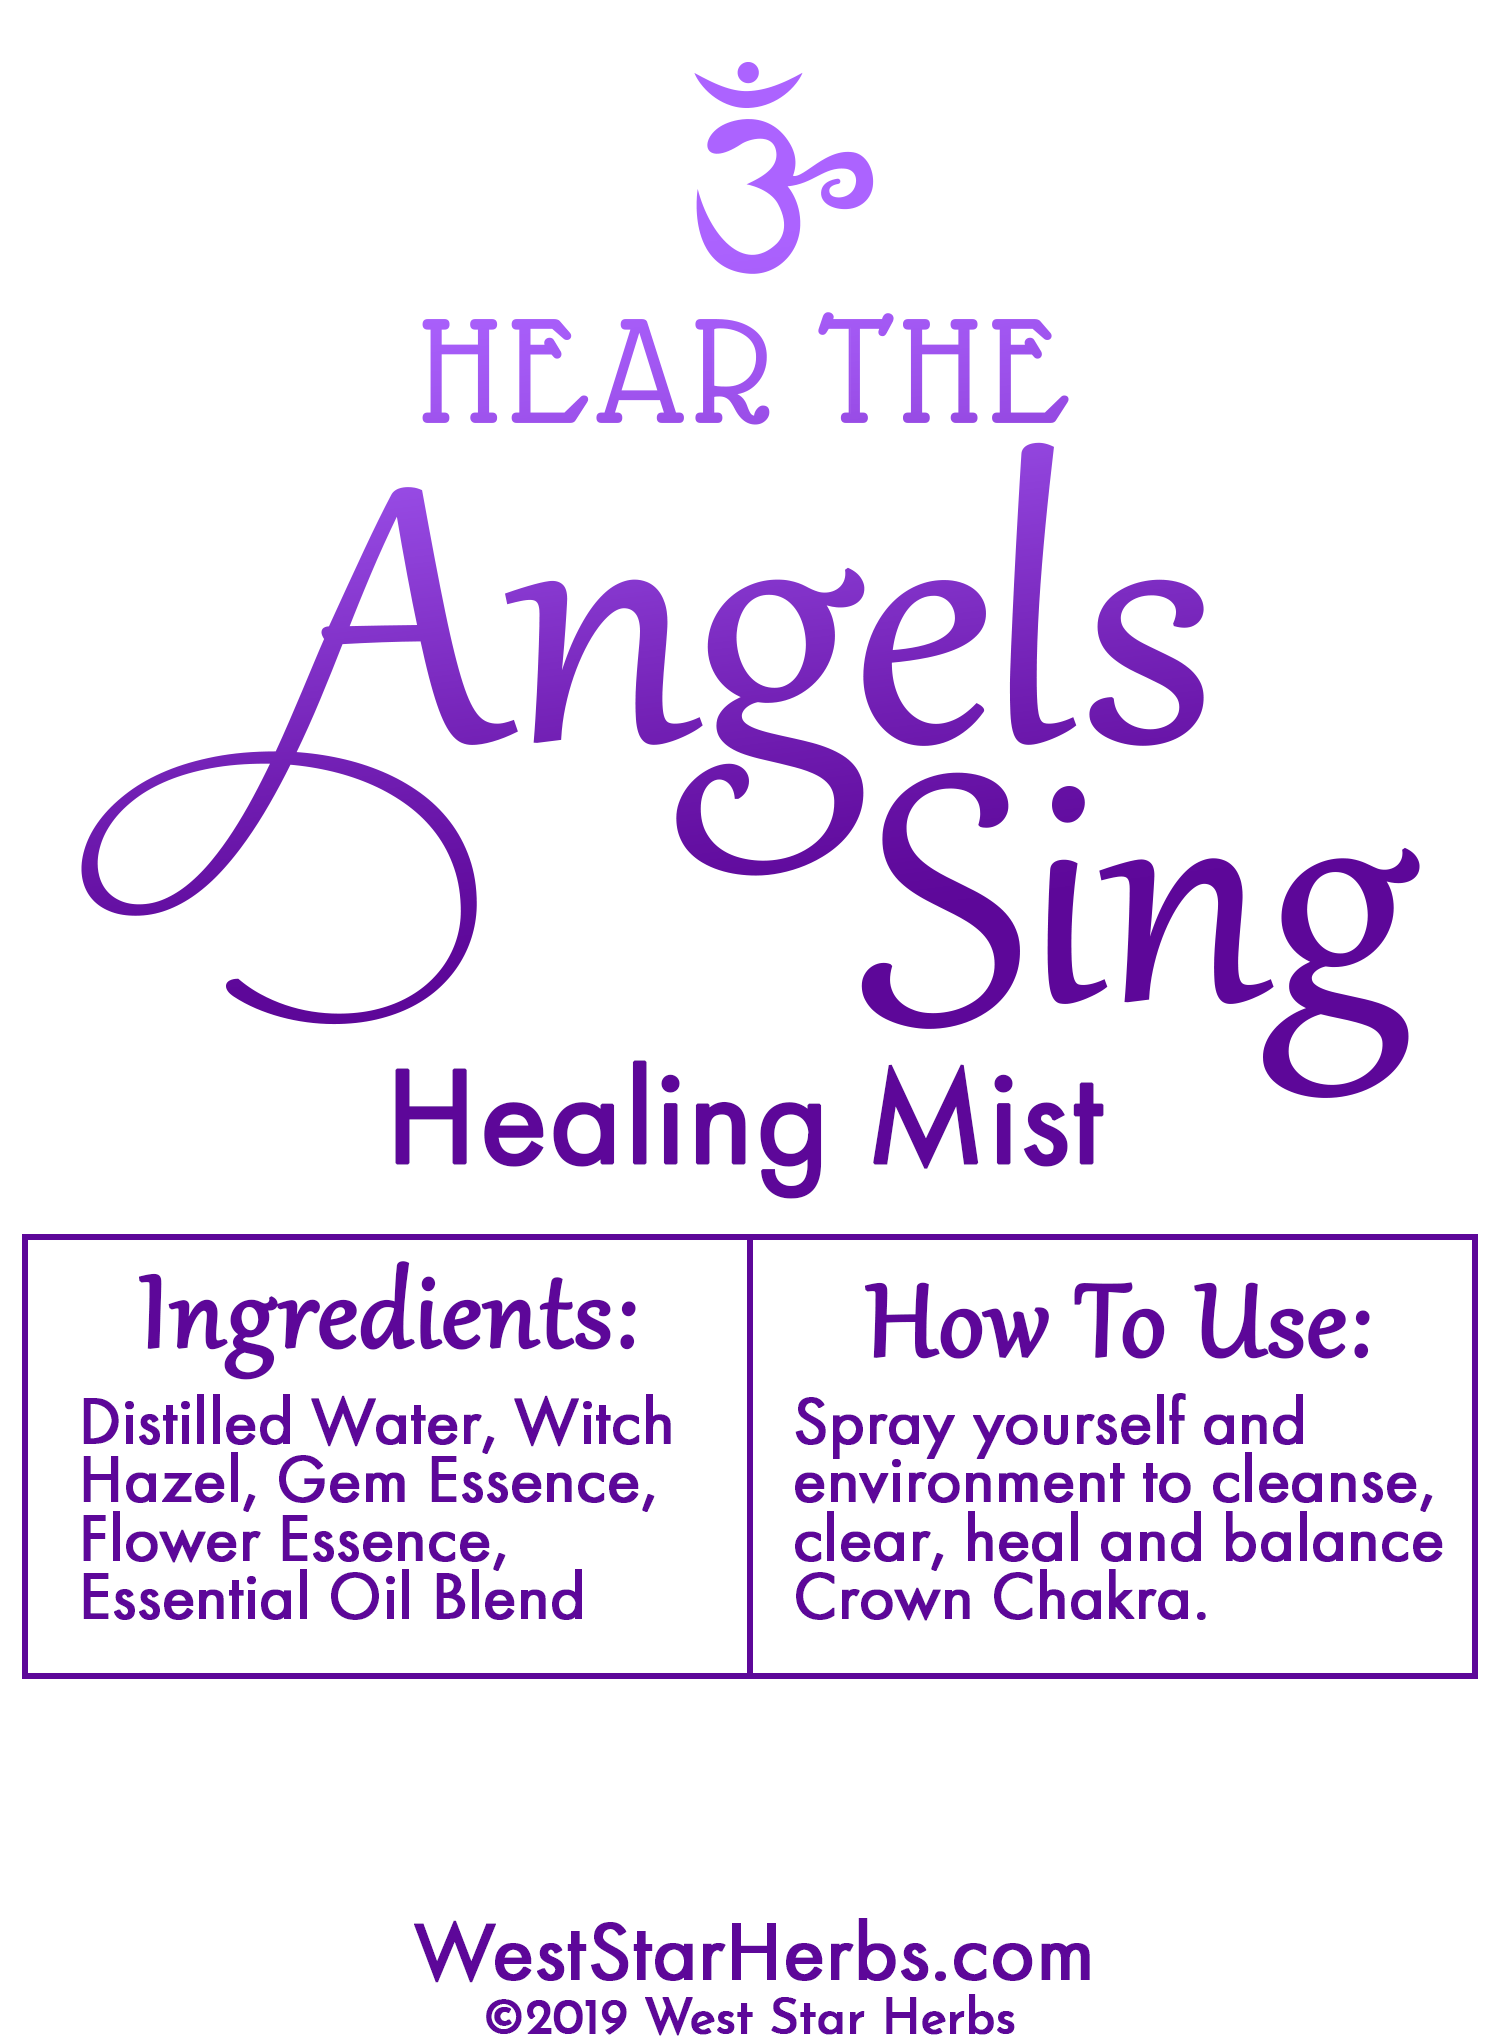 Hear-The-Angels-Sing_22809